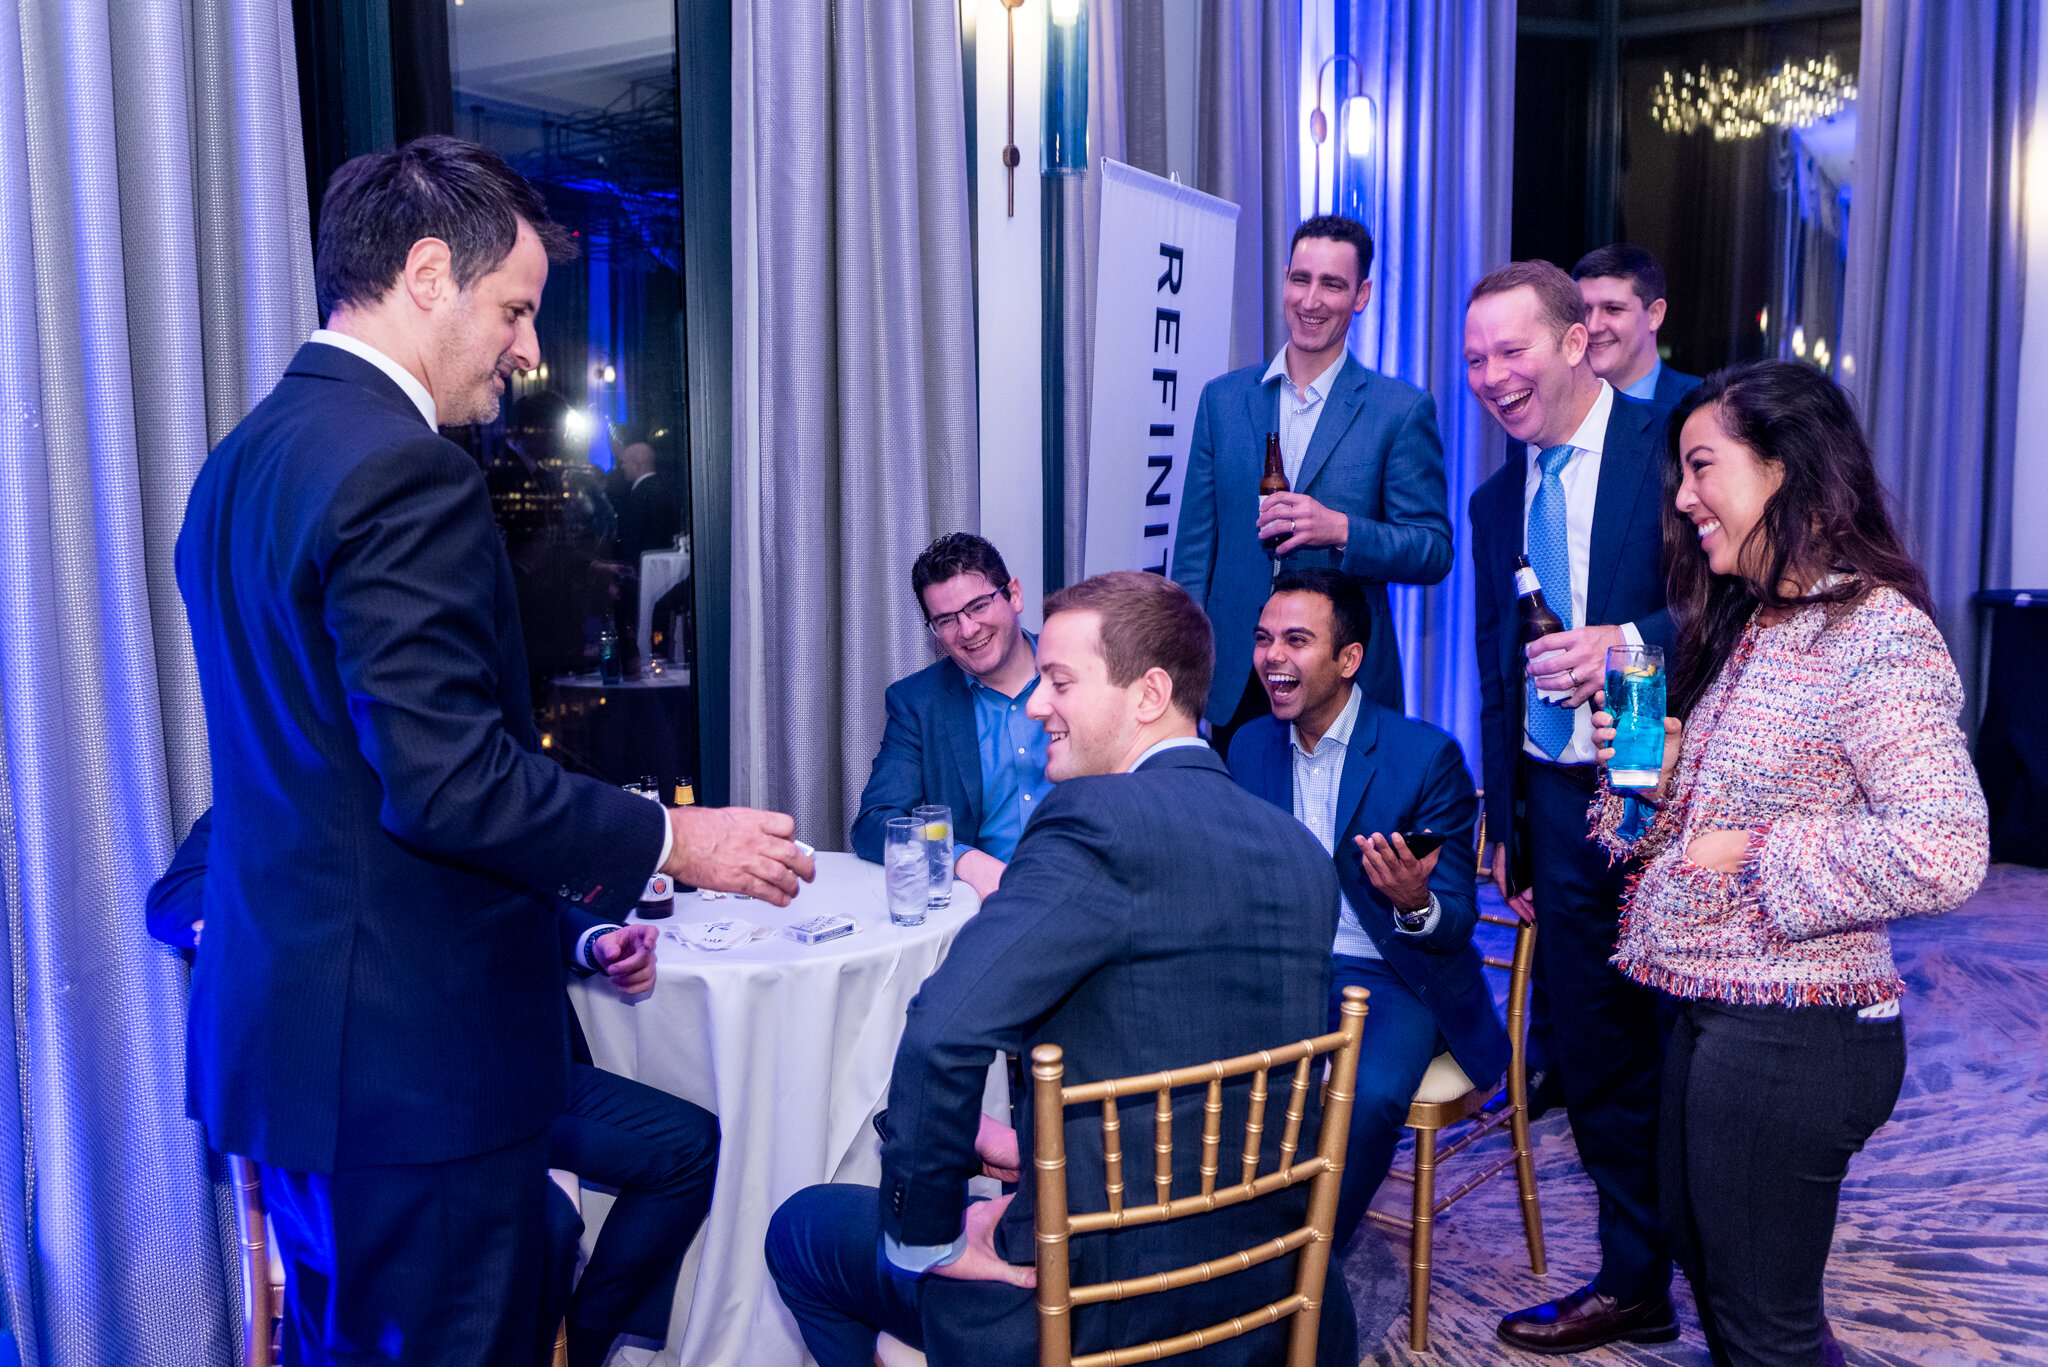 Extend Your Hospitality - Receptions and networking events should be relaxed, easy, and fun!Dennis delivers that personal touch to ensure your attendees know they're valued and appreciated while creating indelible memories.